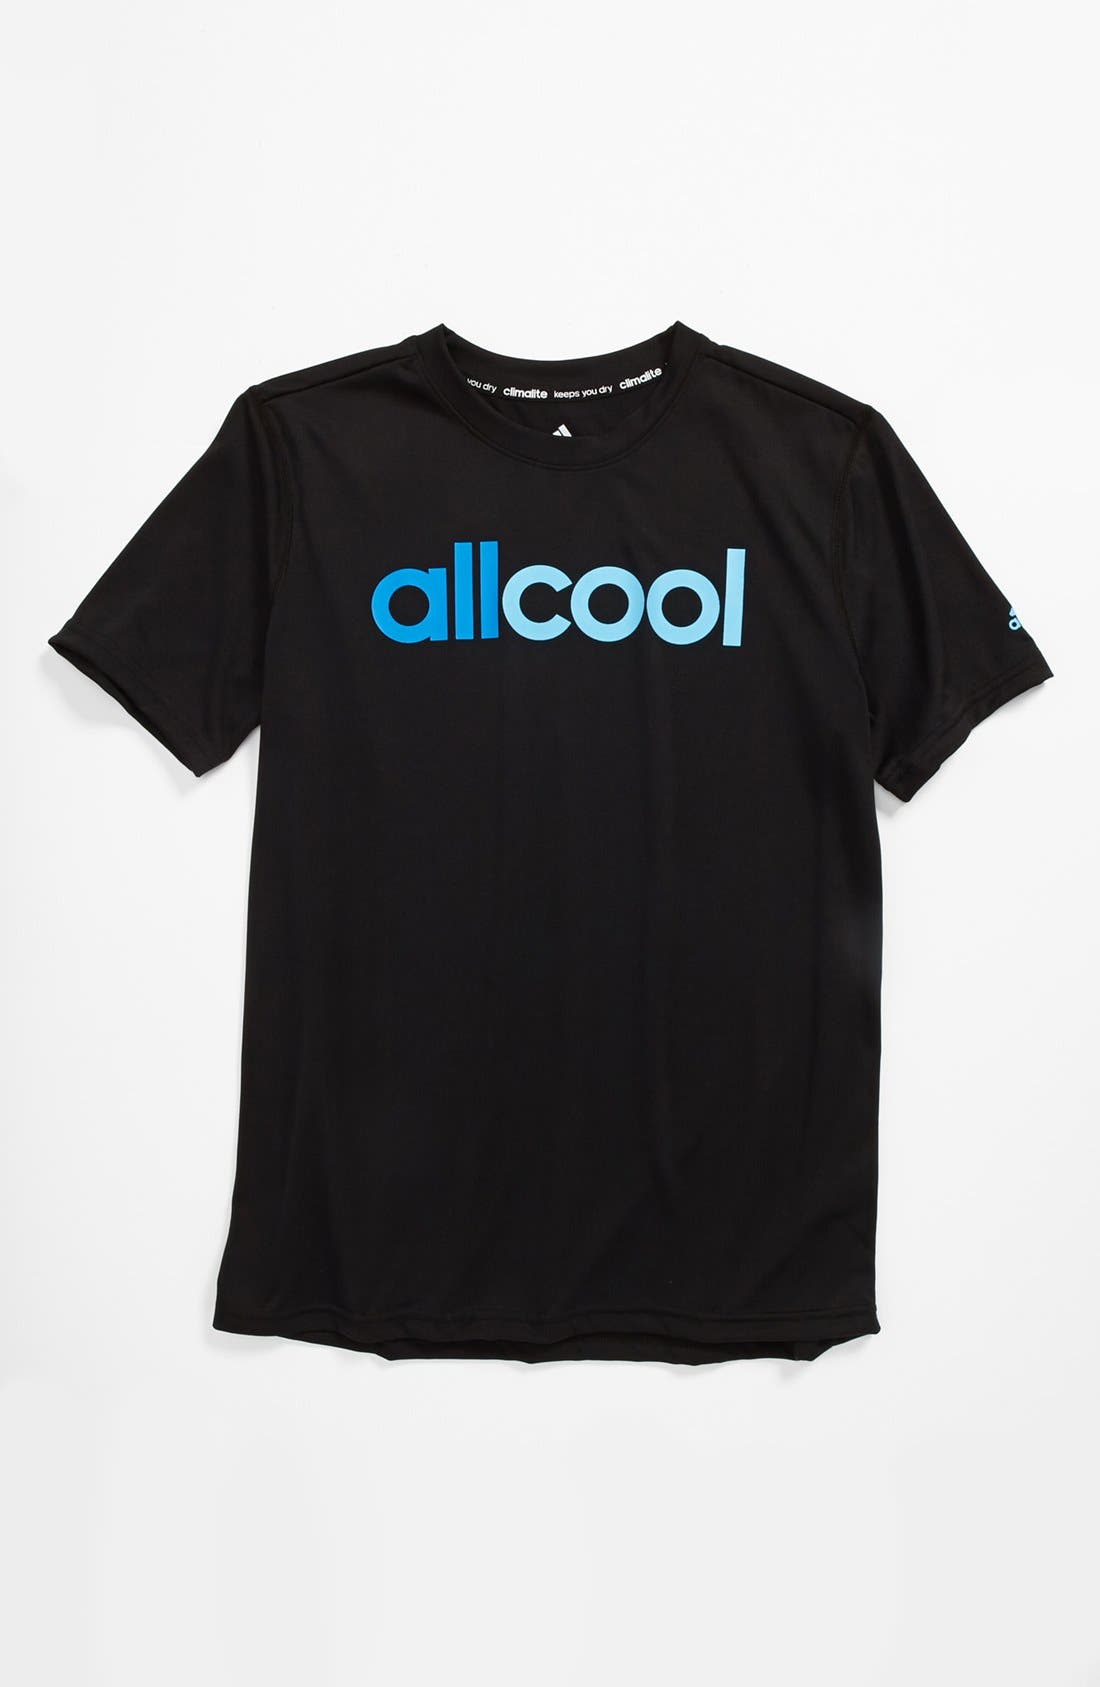 Main Image - adidas 'All Cool' T-Shirt (Big Boys)